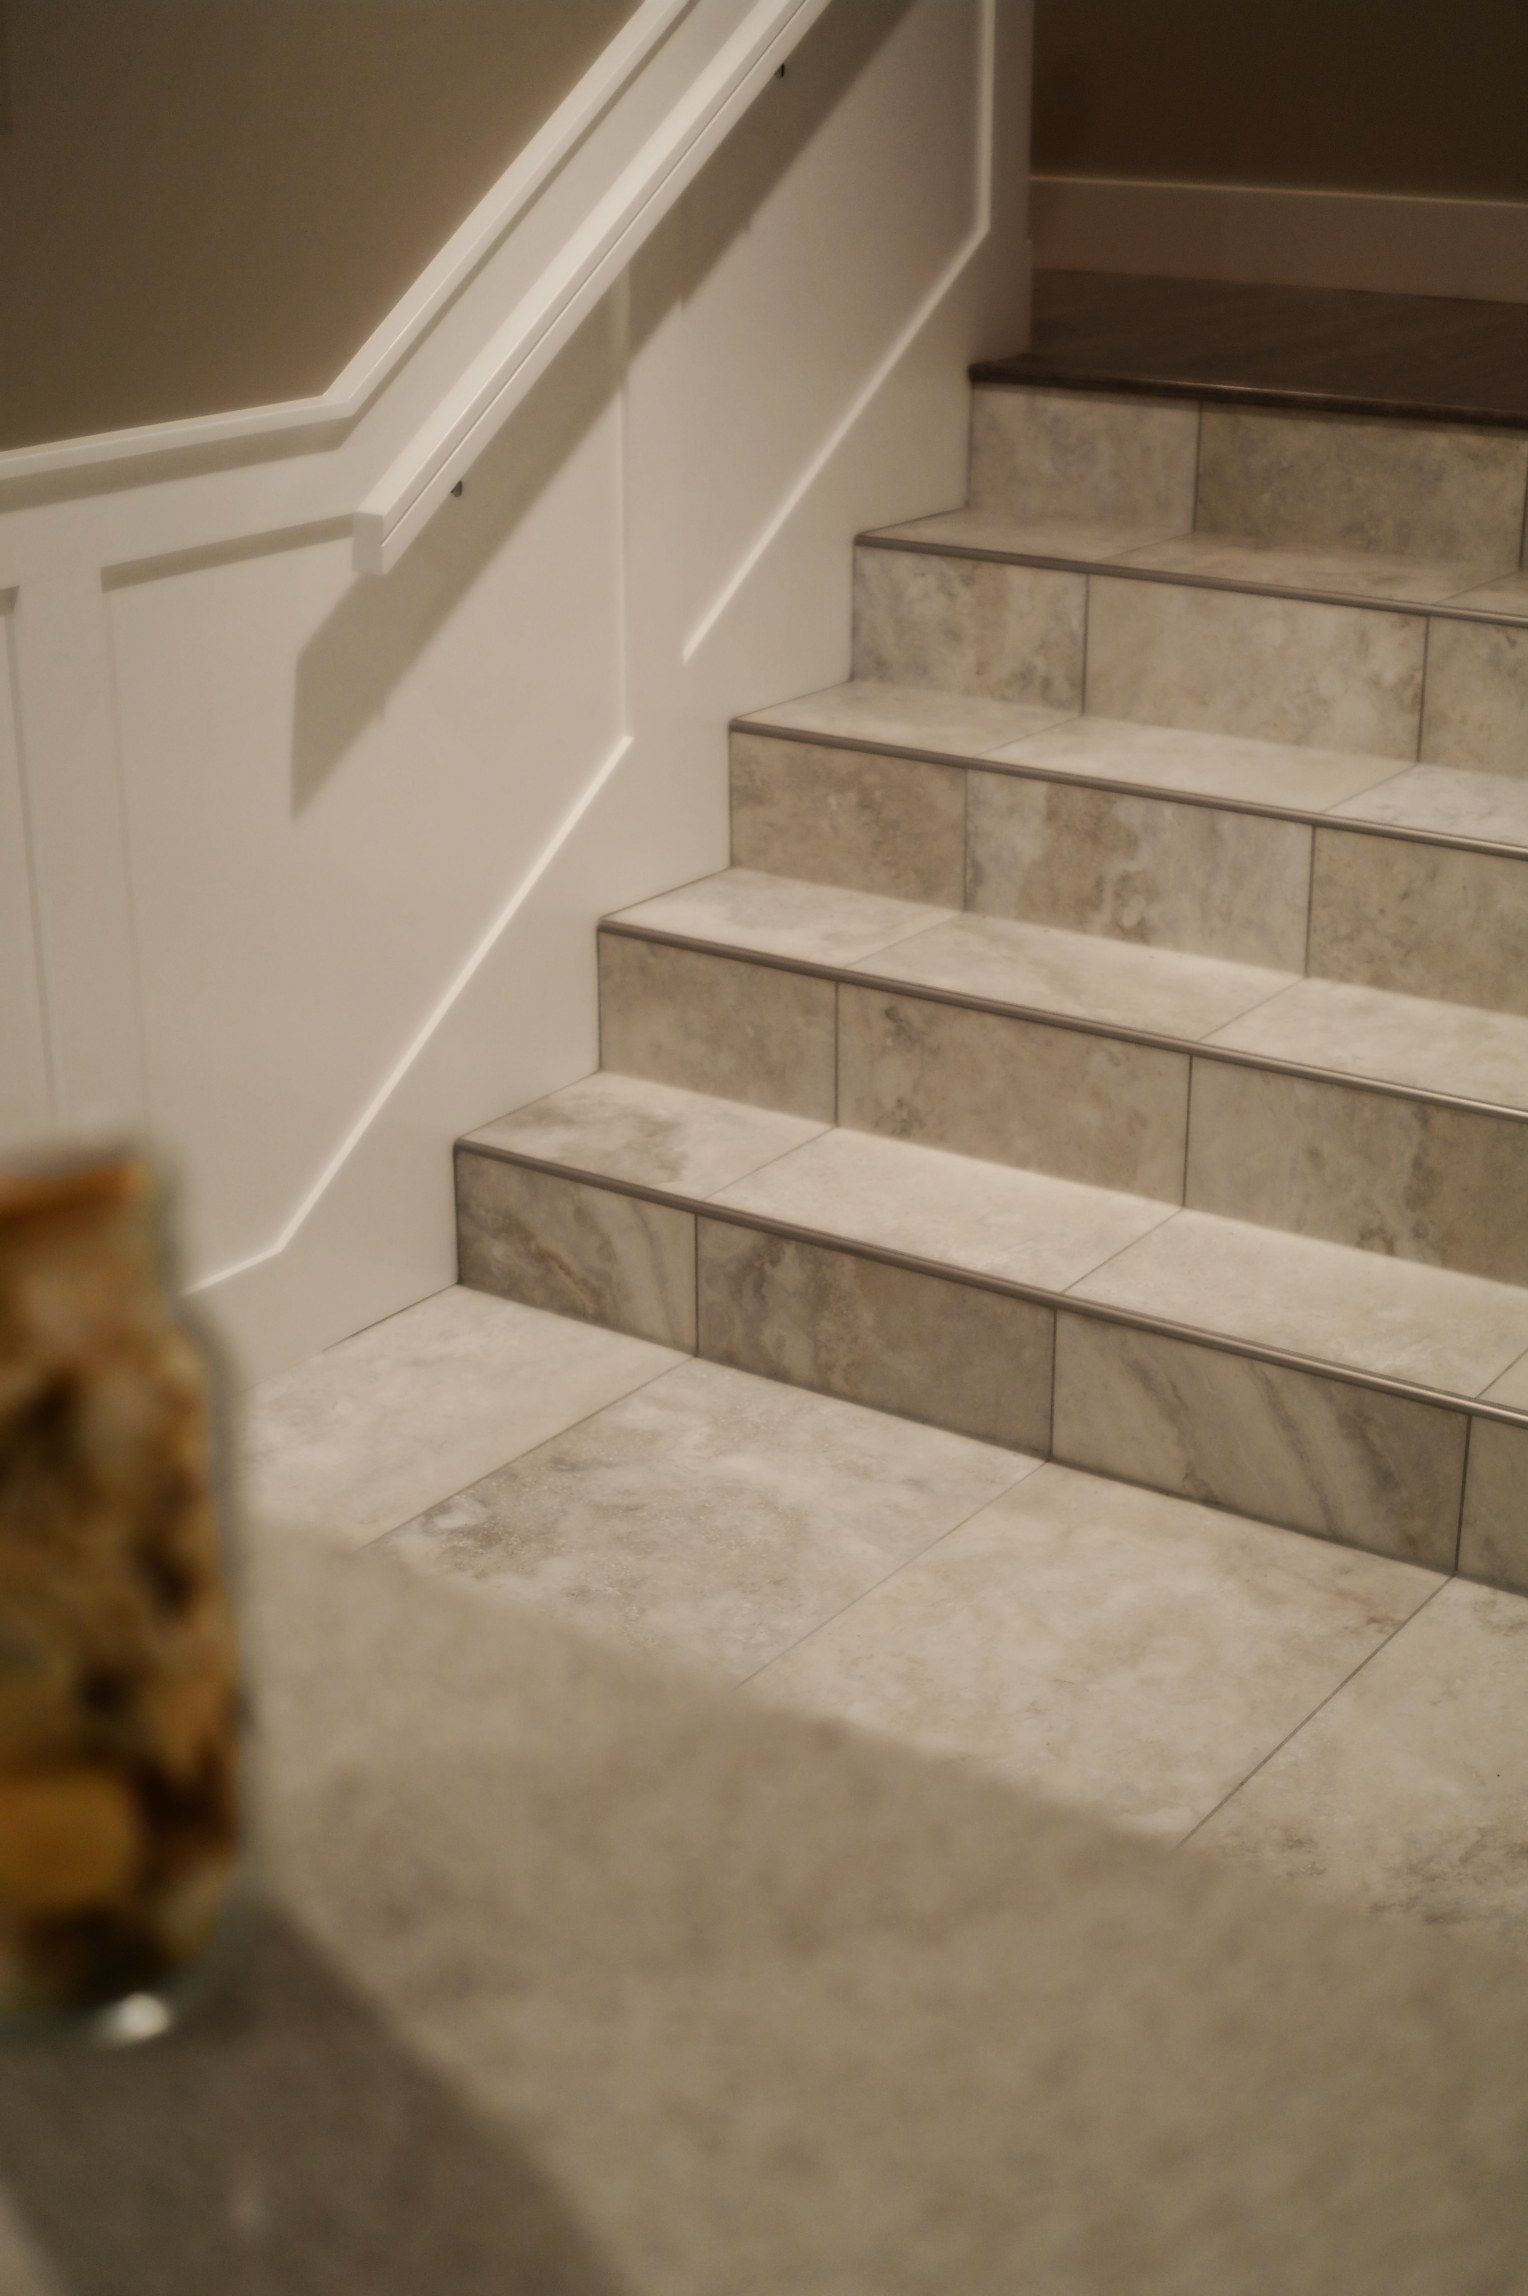 Tile on stairs can be a beautiful durable alternative however tile flooring dailygadgetfo Gallery